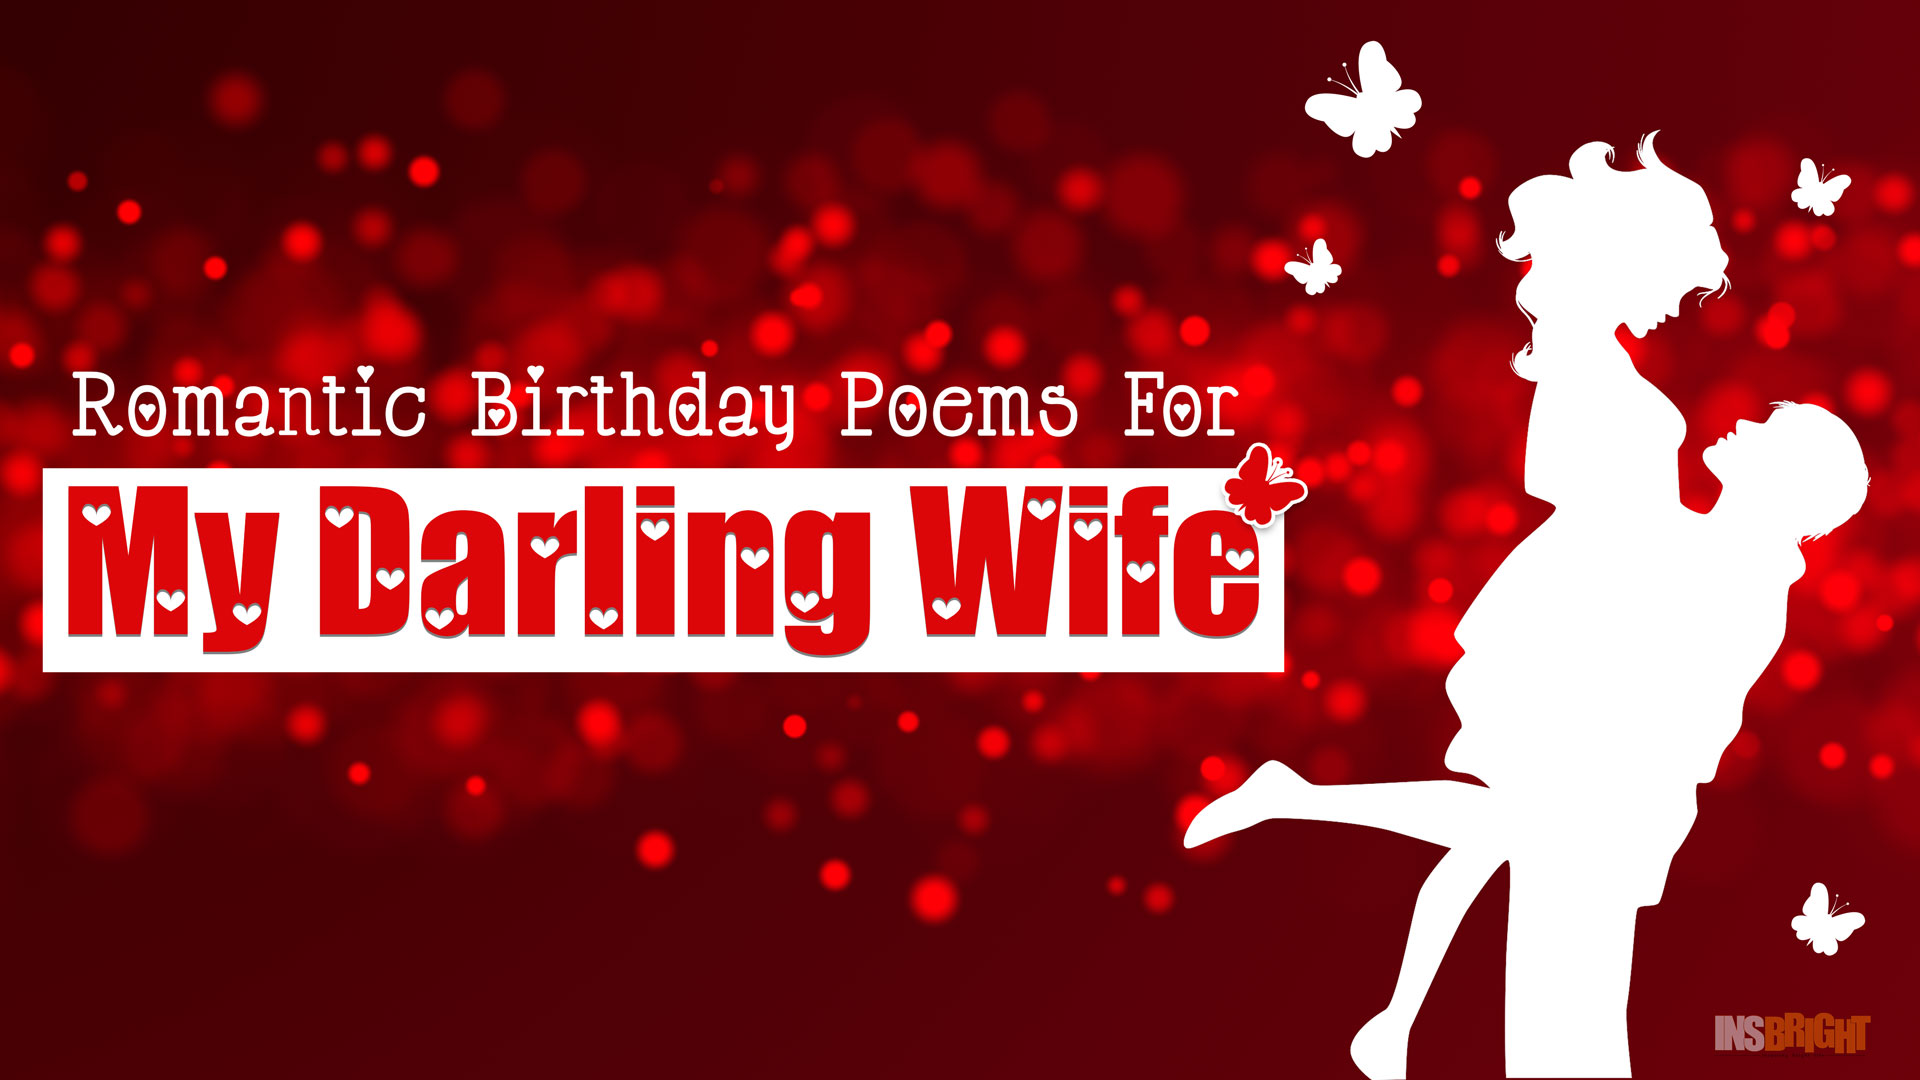 happy birthday wife wallpaper ; birthday-poetry-for-wife-insbright